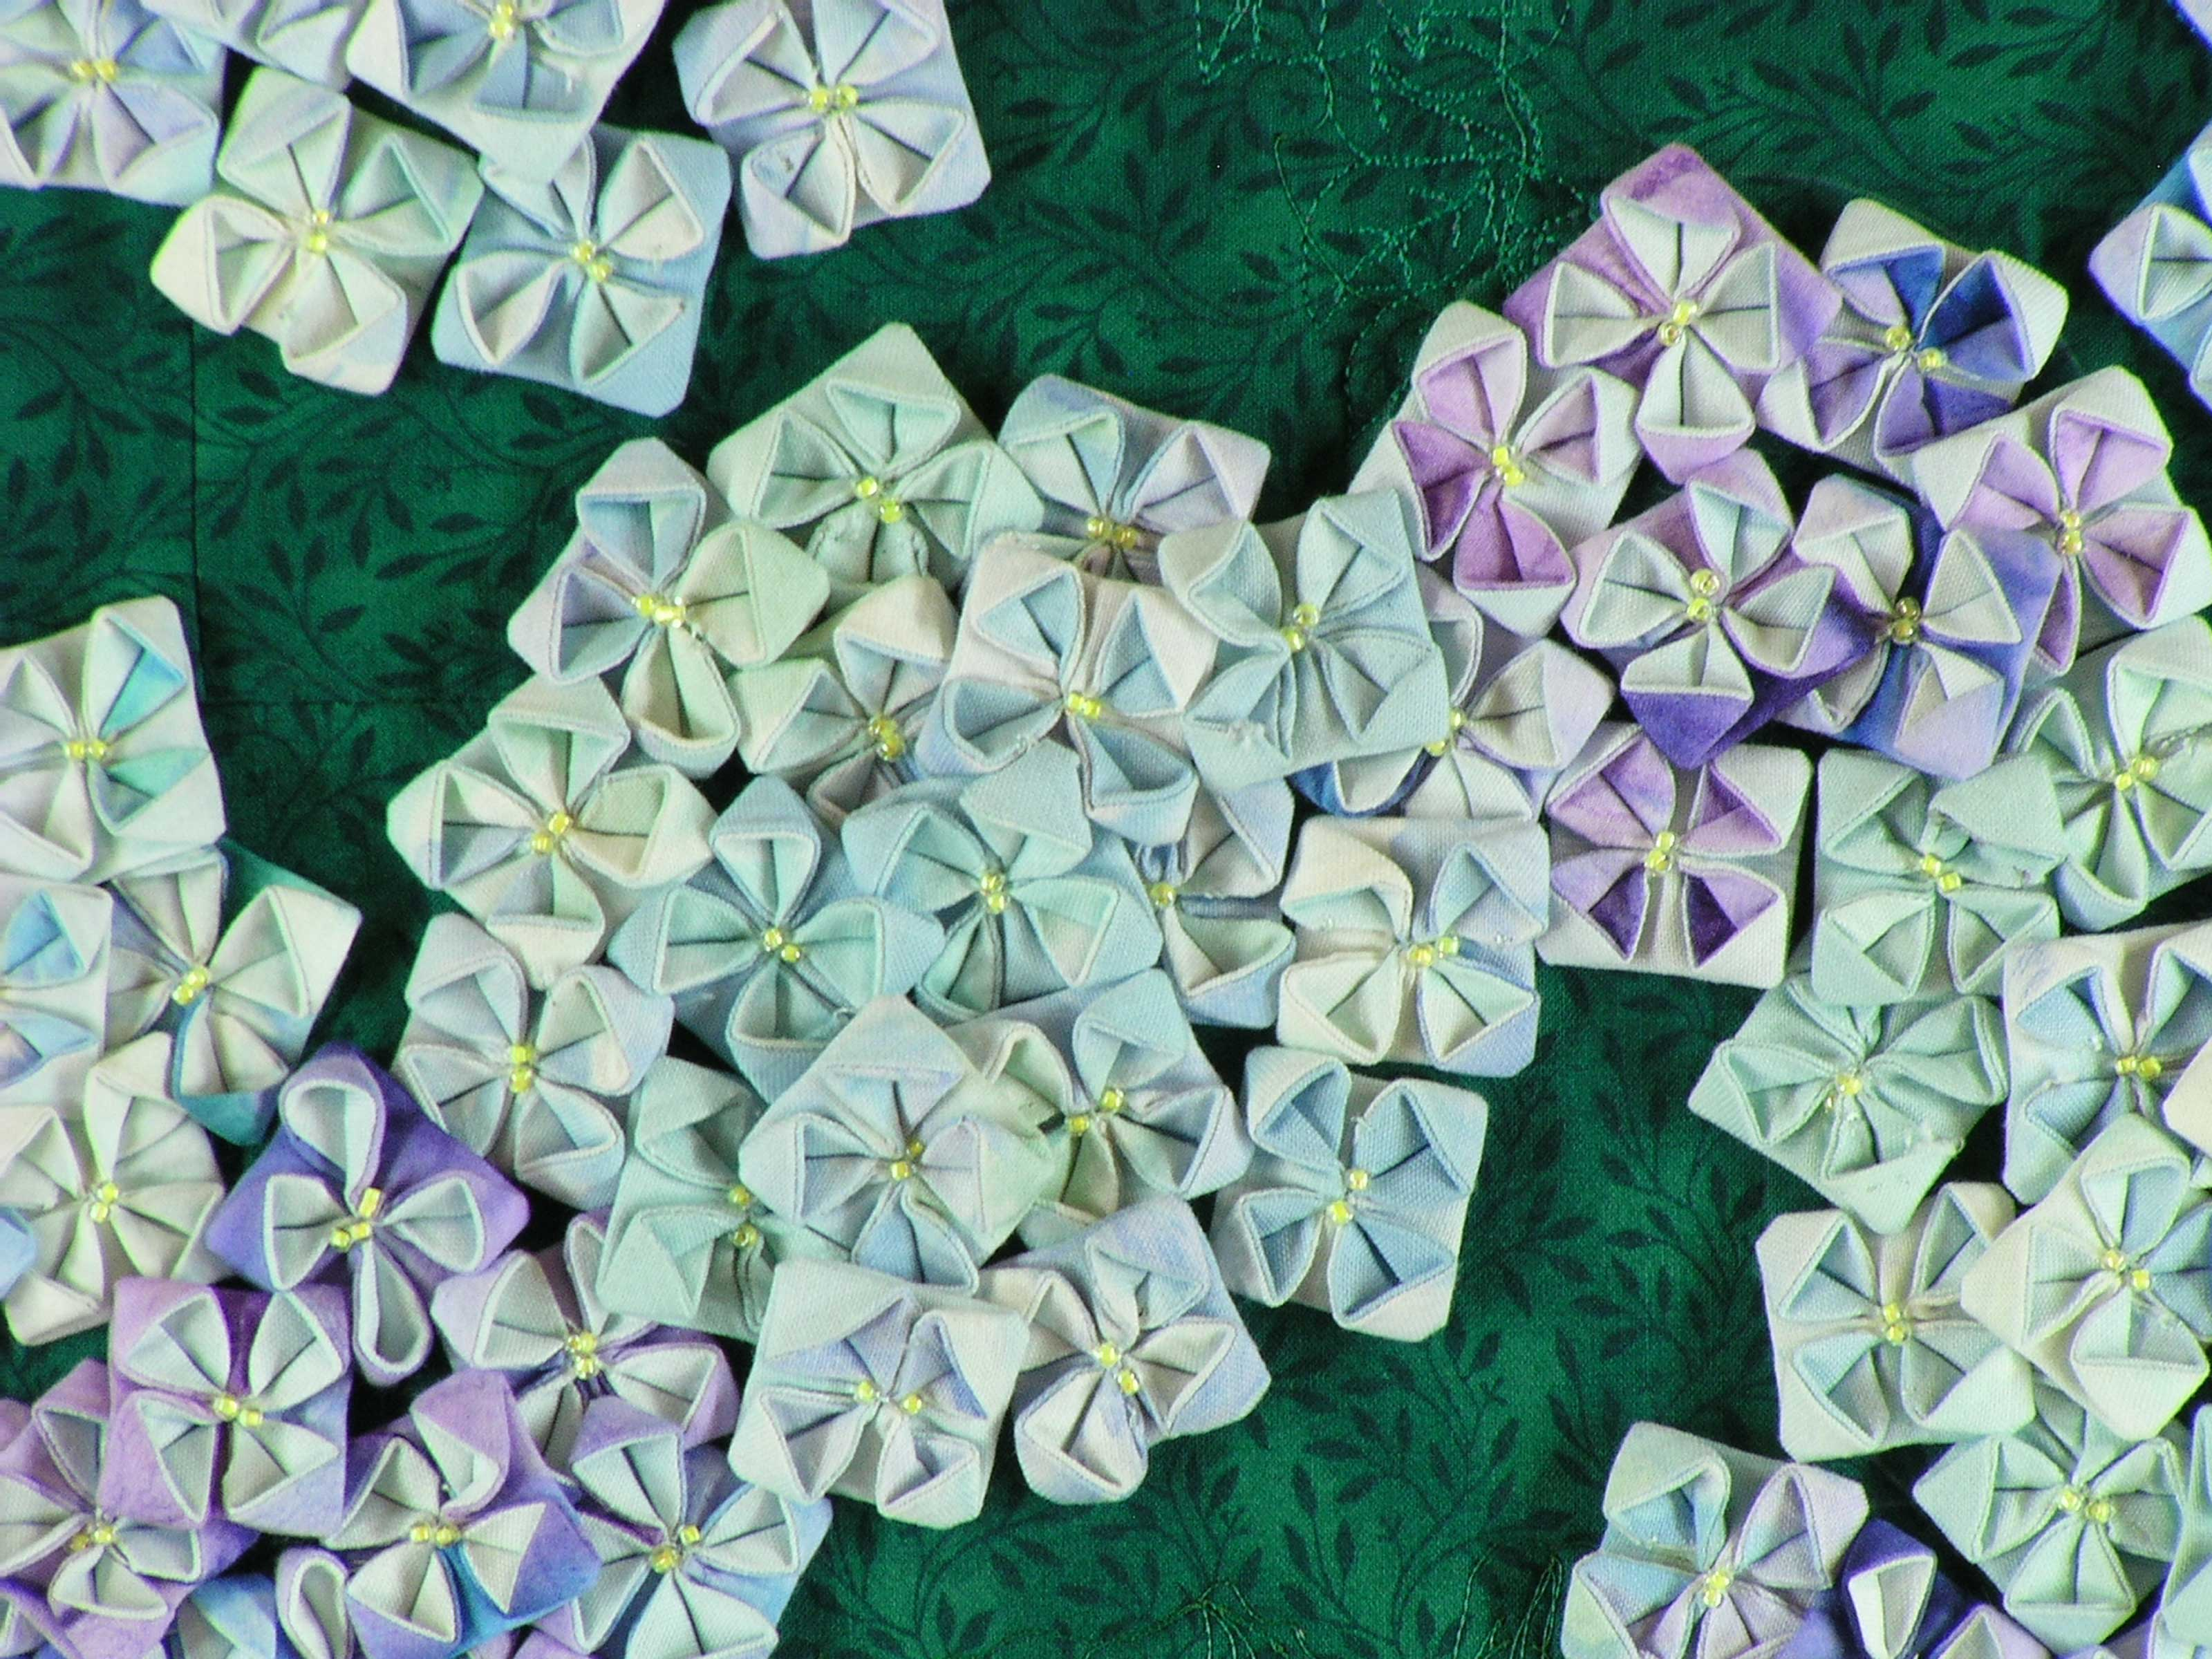 Hydrangea blossoms created by folding numerous squares of handprinted fabric.